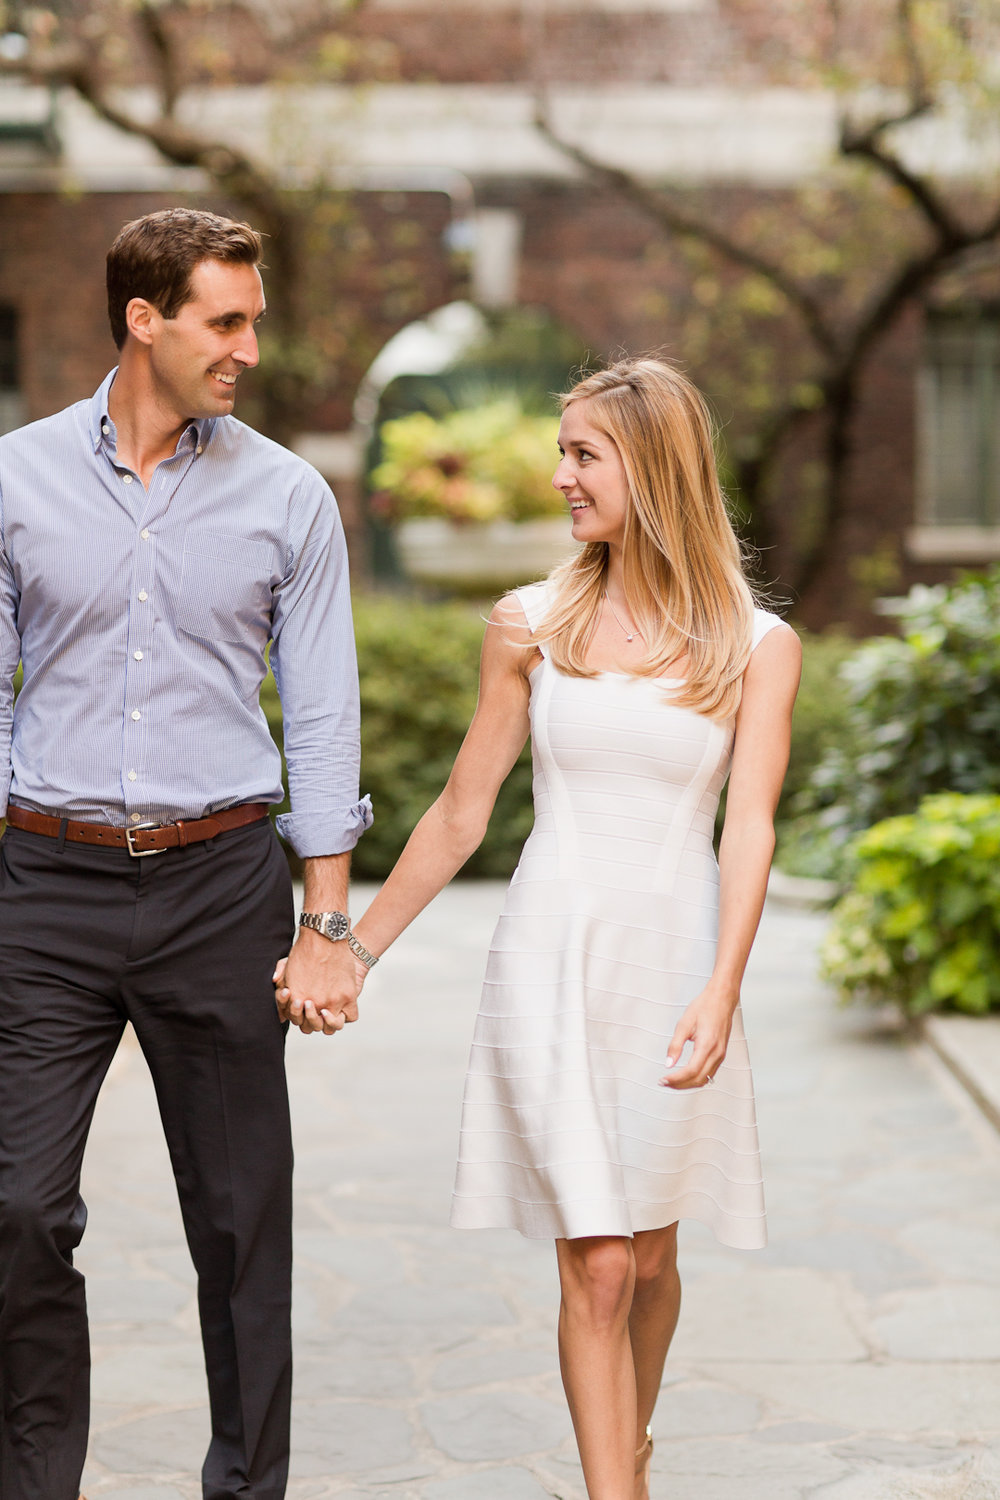 Melissa Kruse Photography - Daniece & Chris West Village Engagement Photos-64.jpg